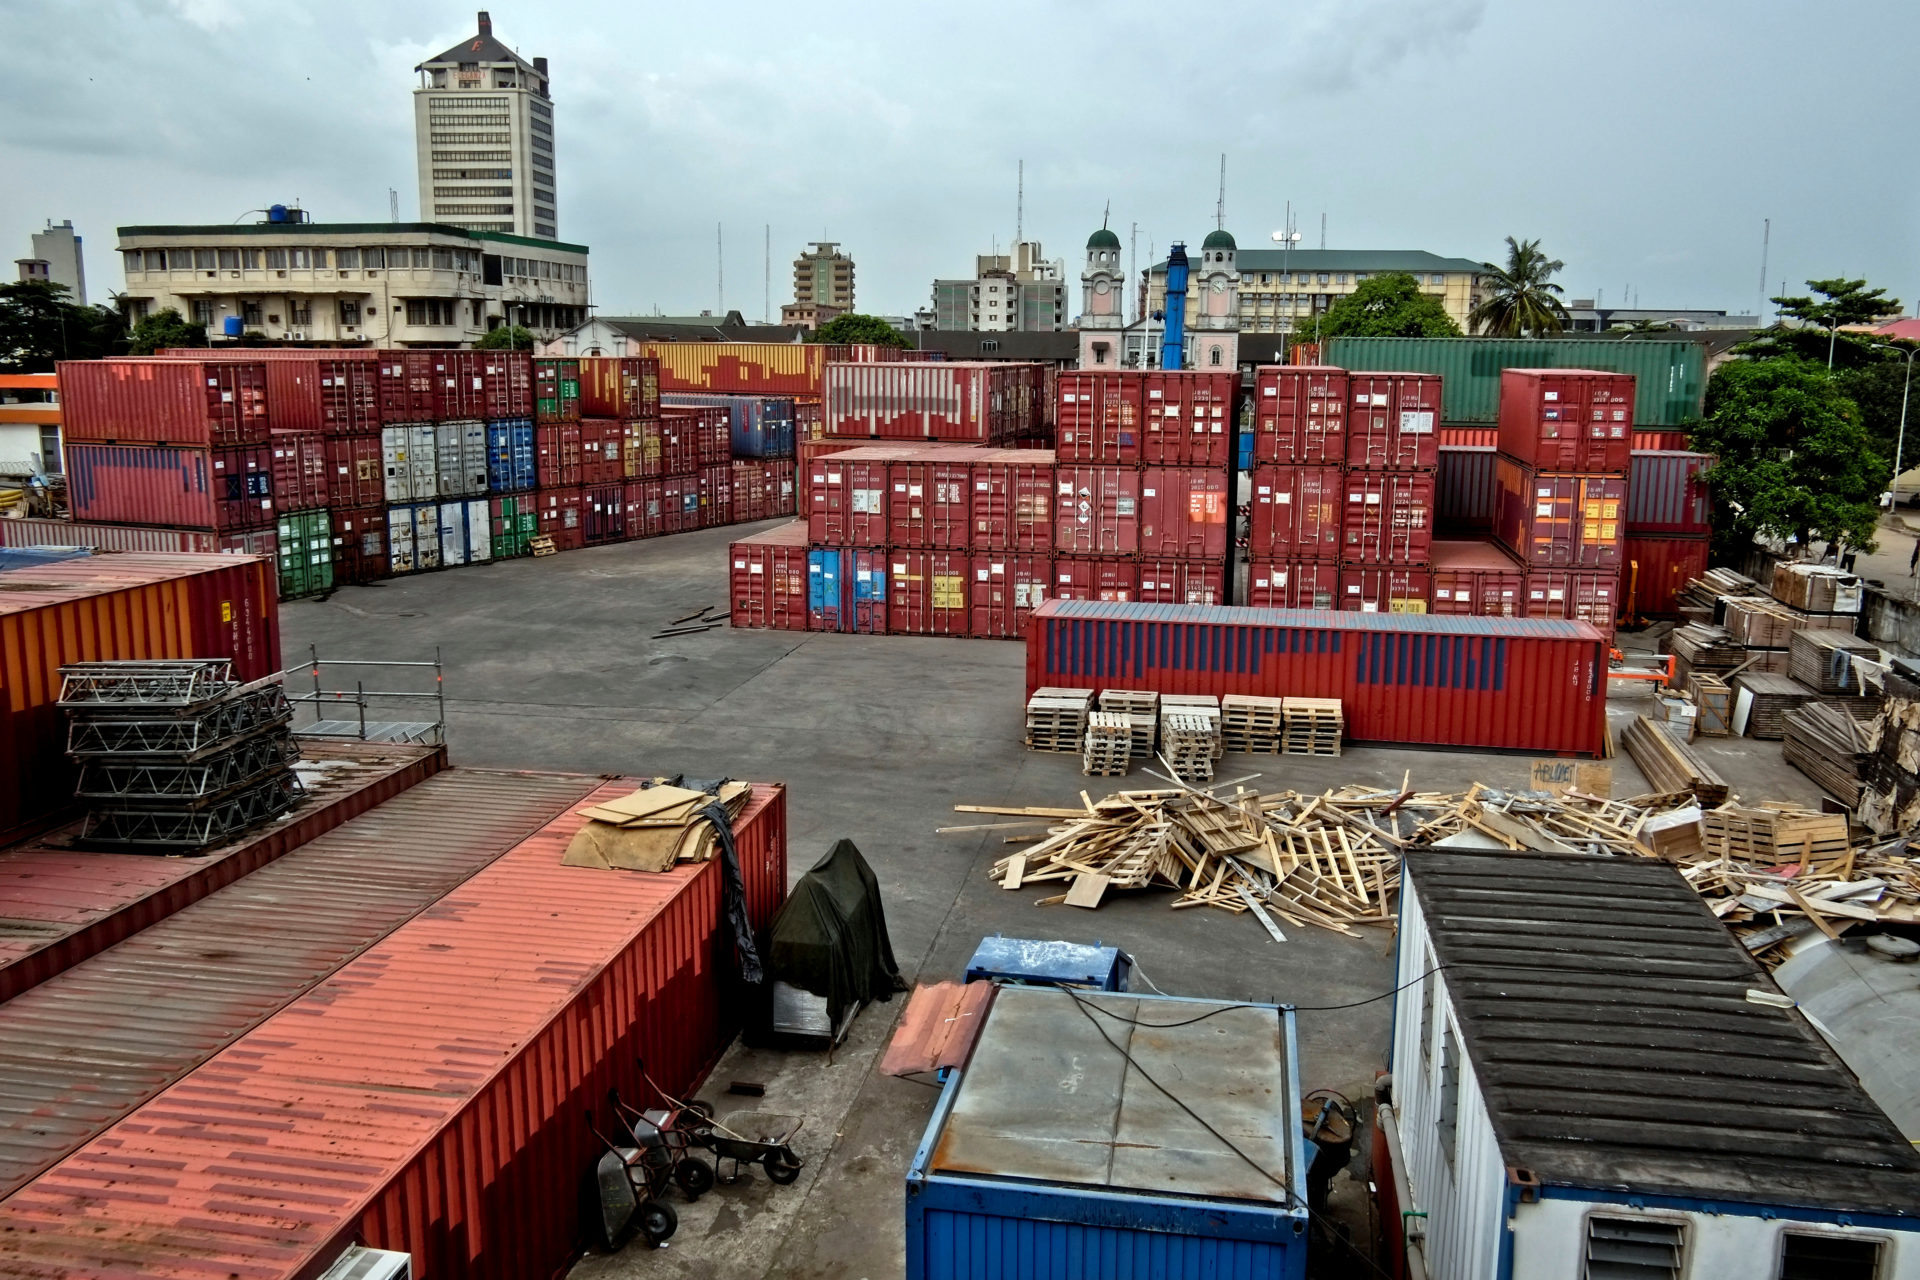 Access Bank : Port Lagos containers, Prisme Proparco ©James Keogh Wostok